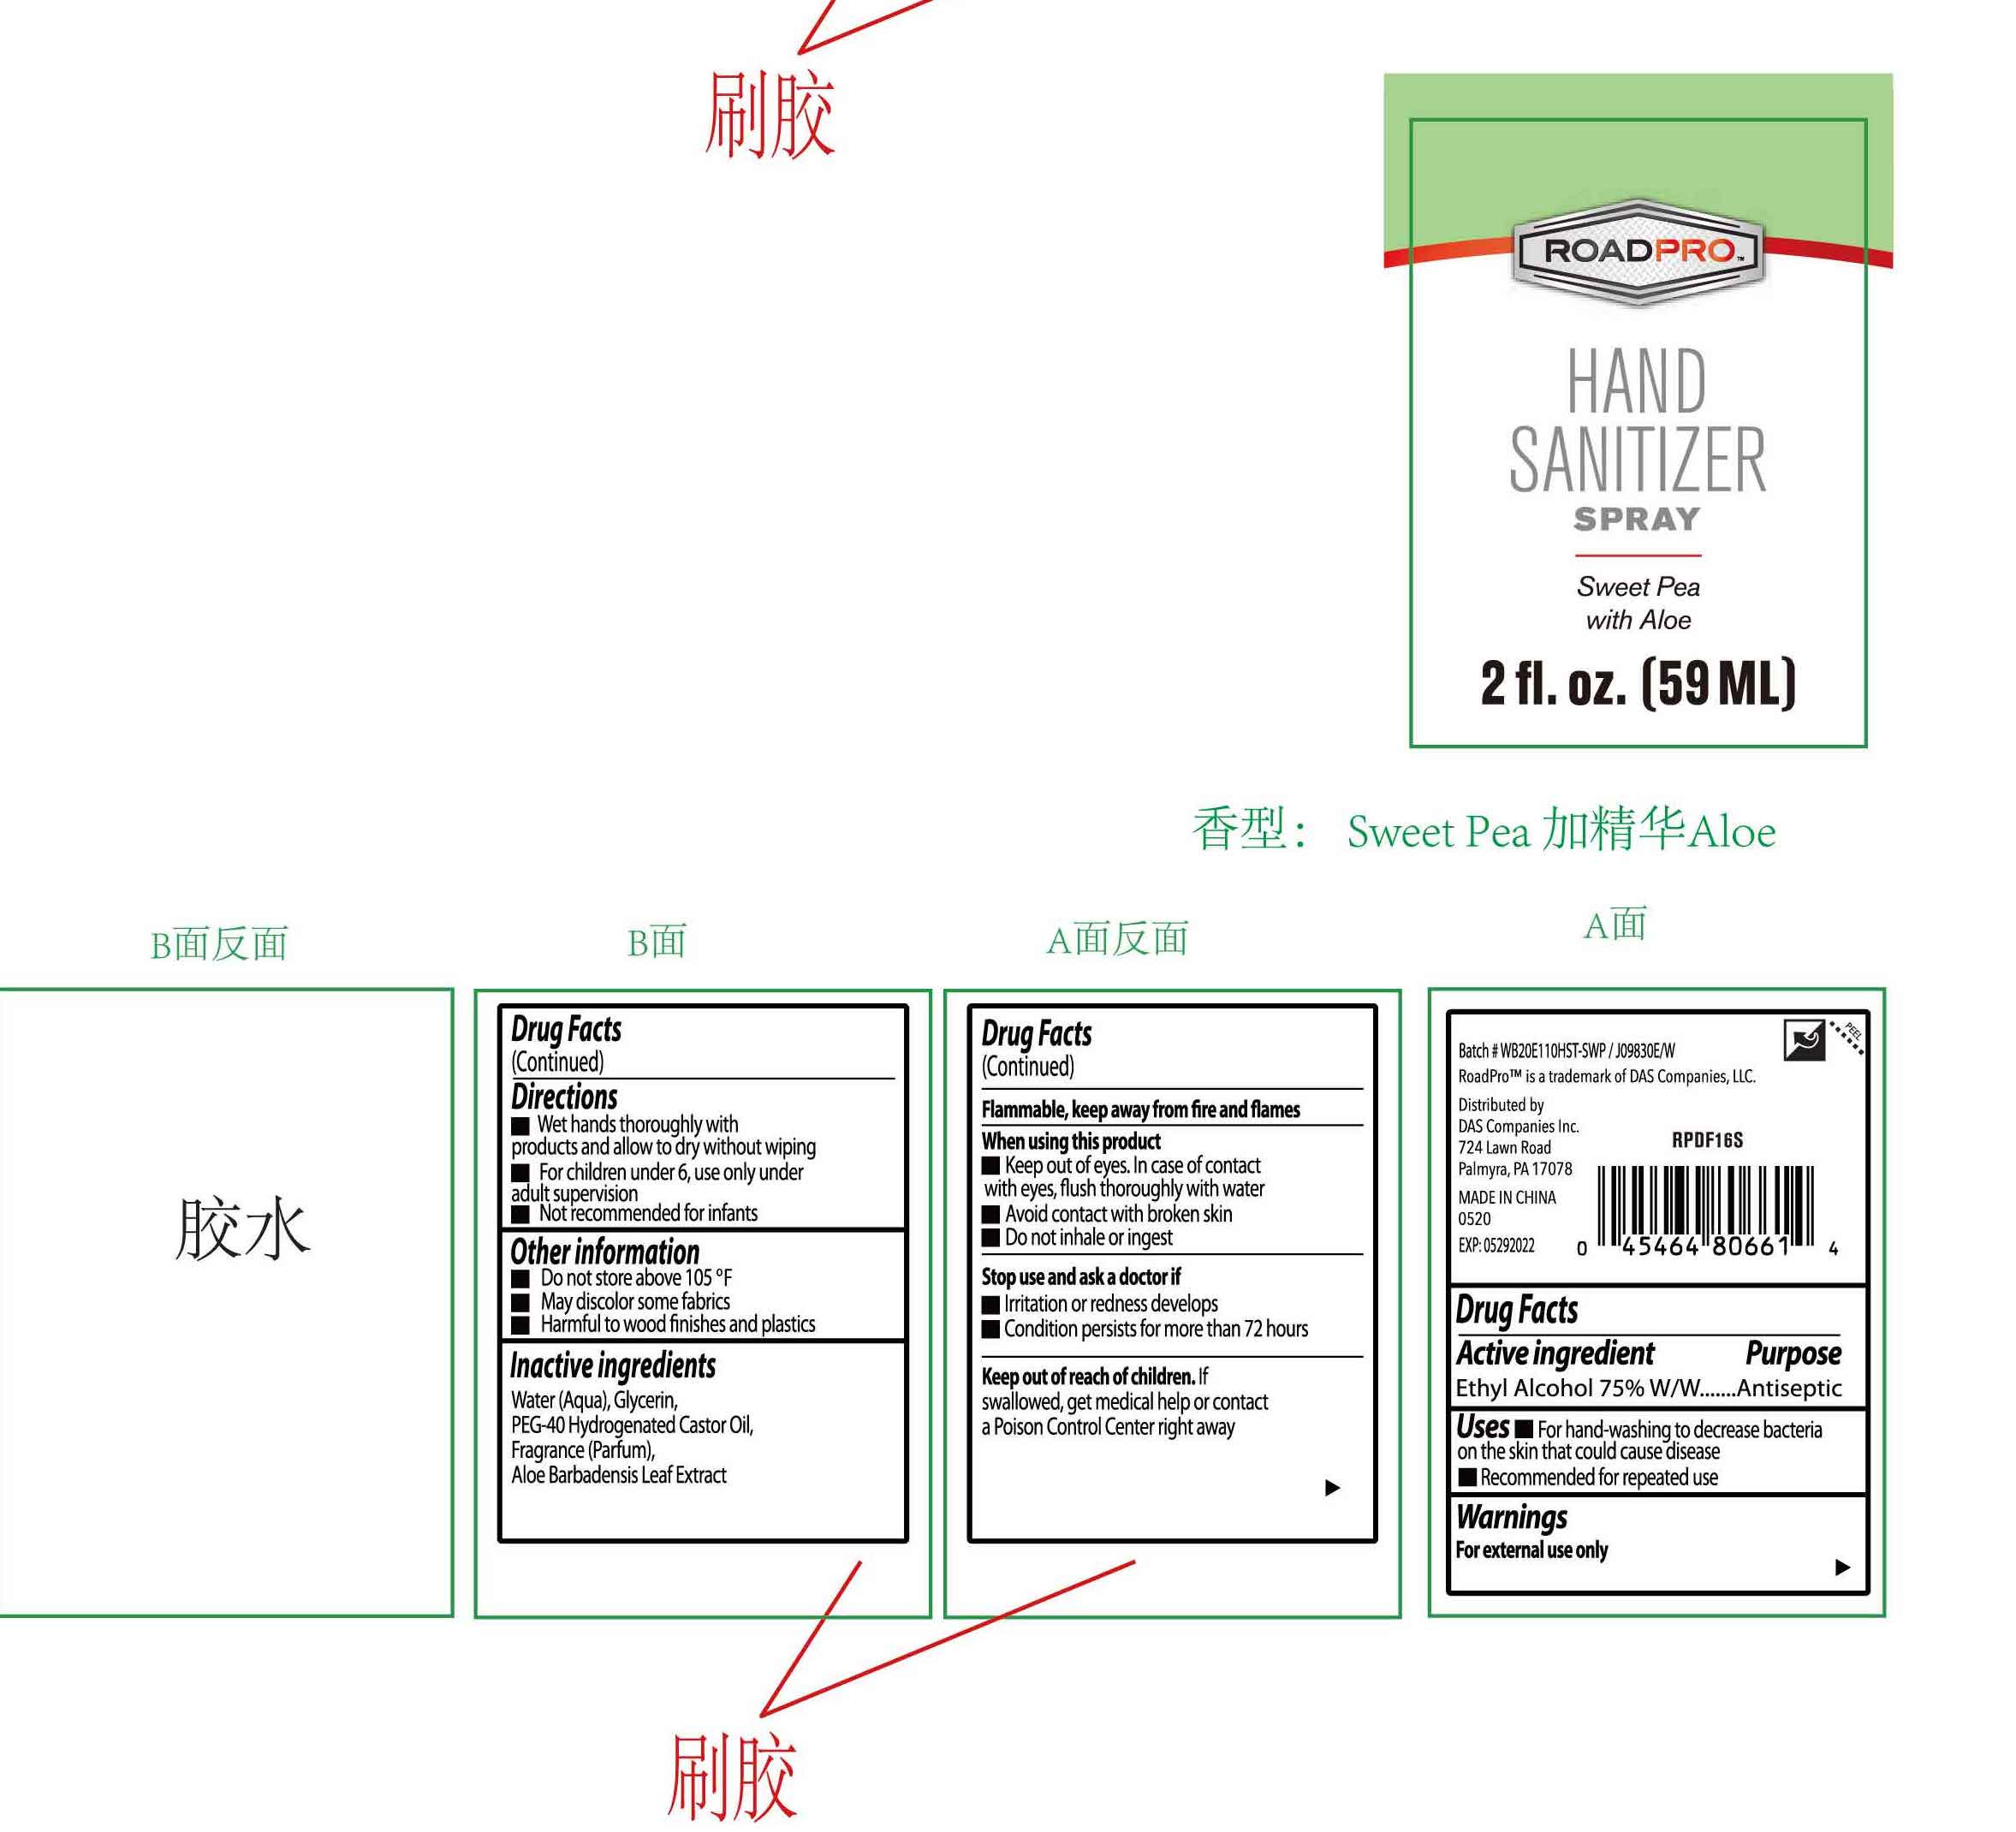 59ml package label